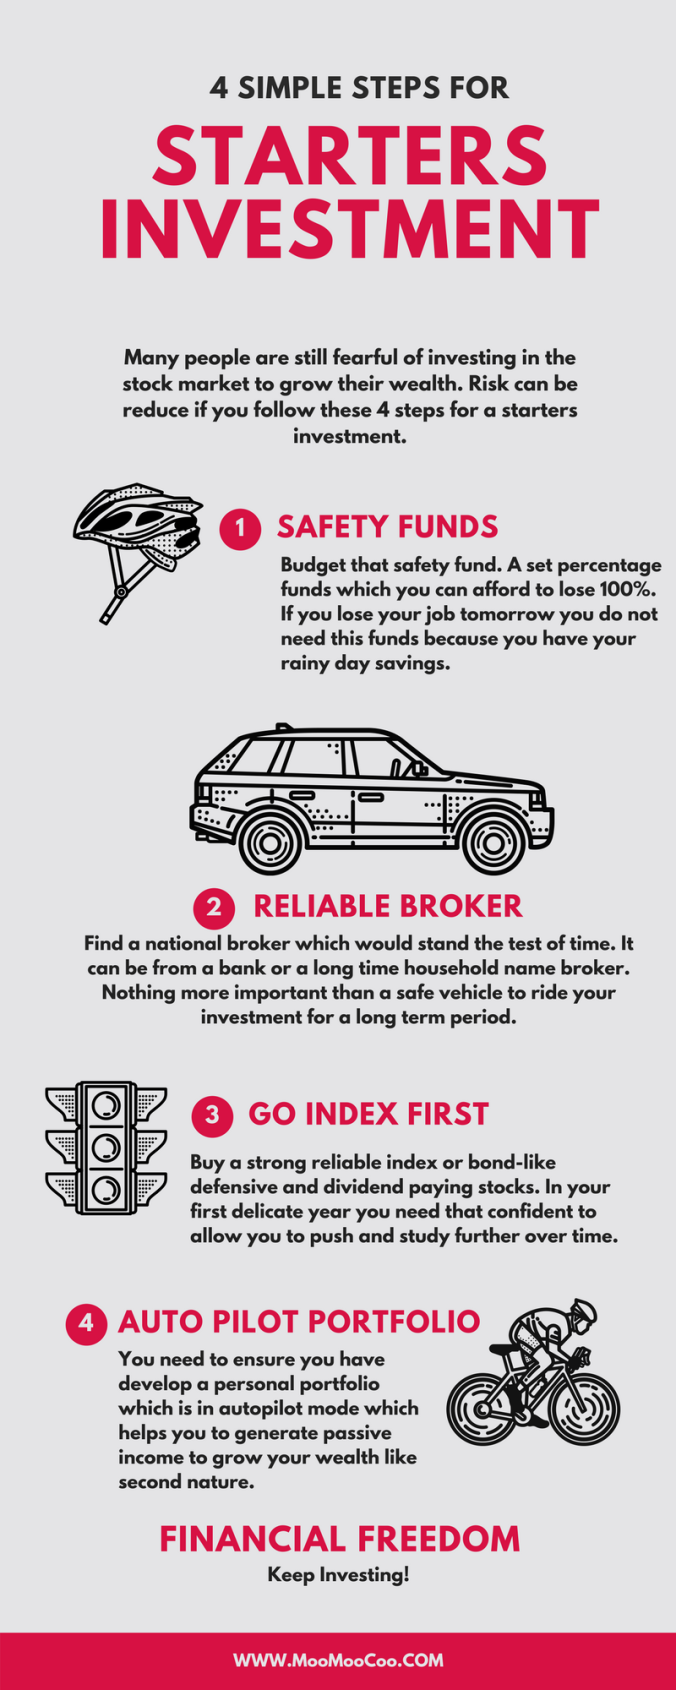 Safety Funds